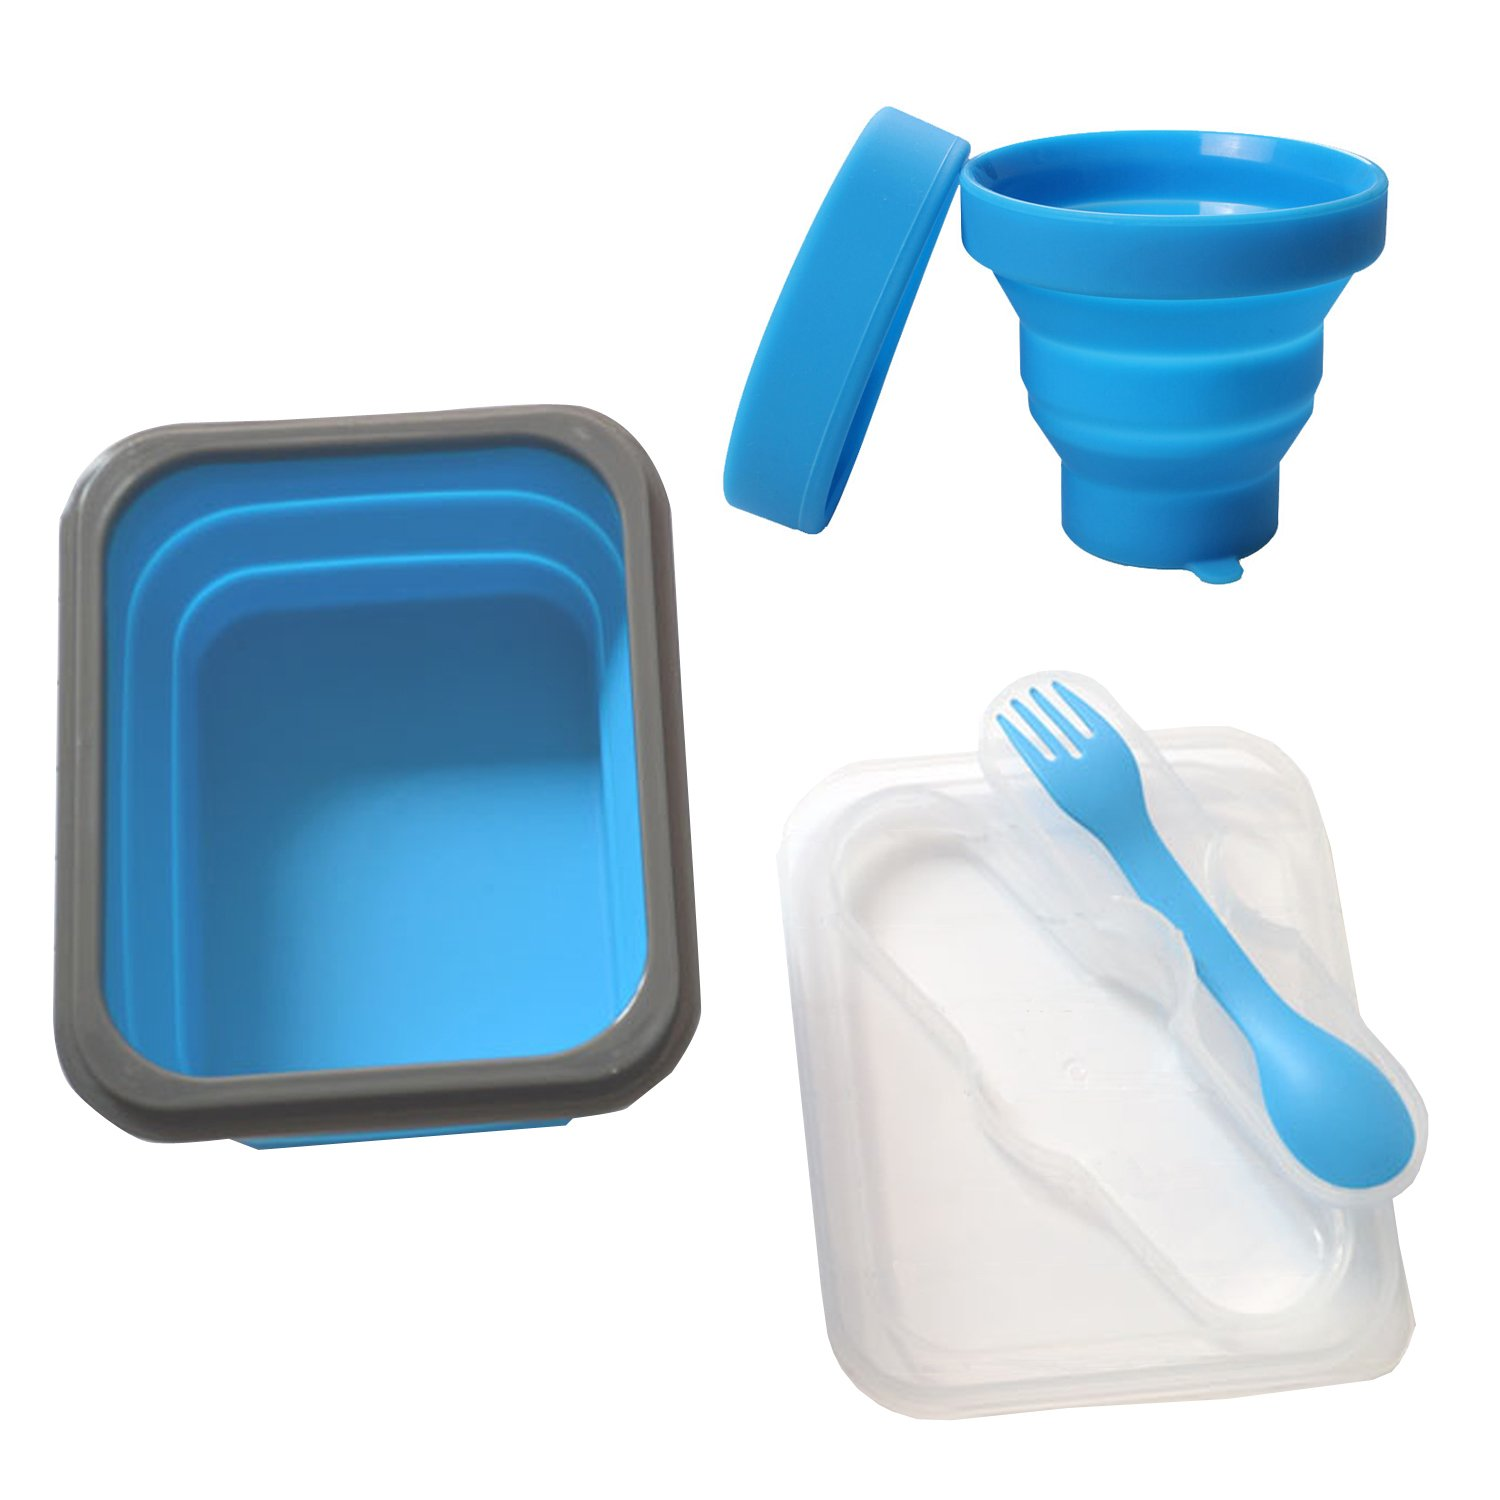 Pack of 4 HOOYEE Creative Portable Folding Silicone Drinking Cup Collapsible Toothbrush Cup Case for Camping Adventure and More Hiking Running